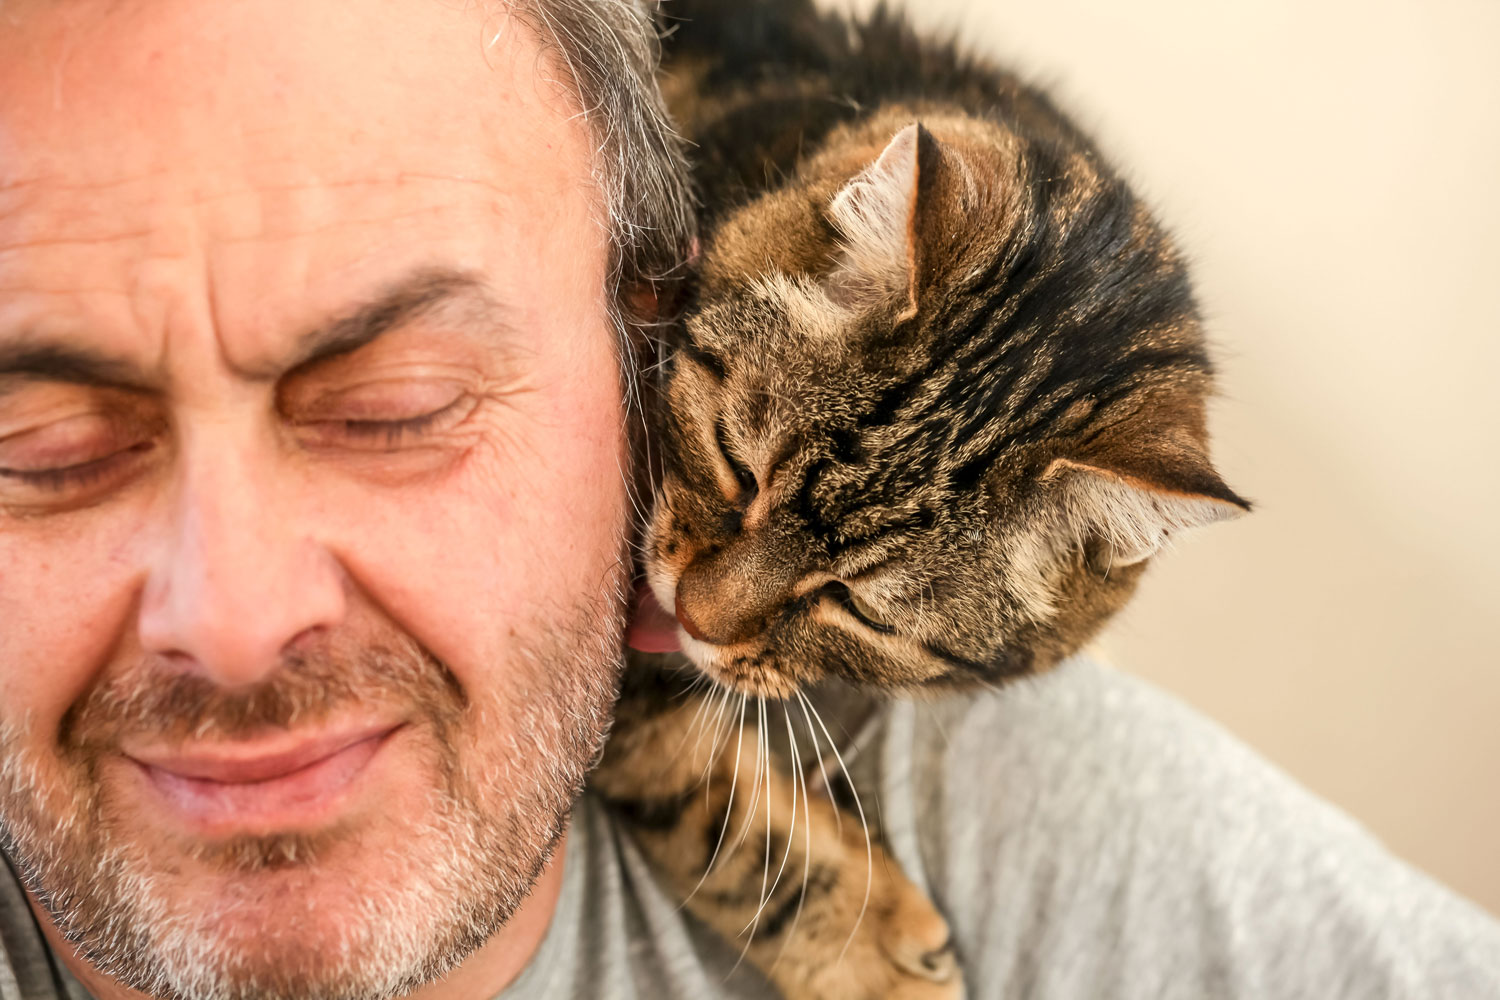 A cute tabby cat licking the beard of his owner, Why Does My Cat Eat And Chew My Hair?